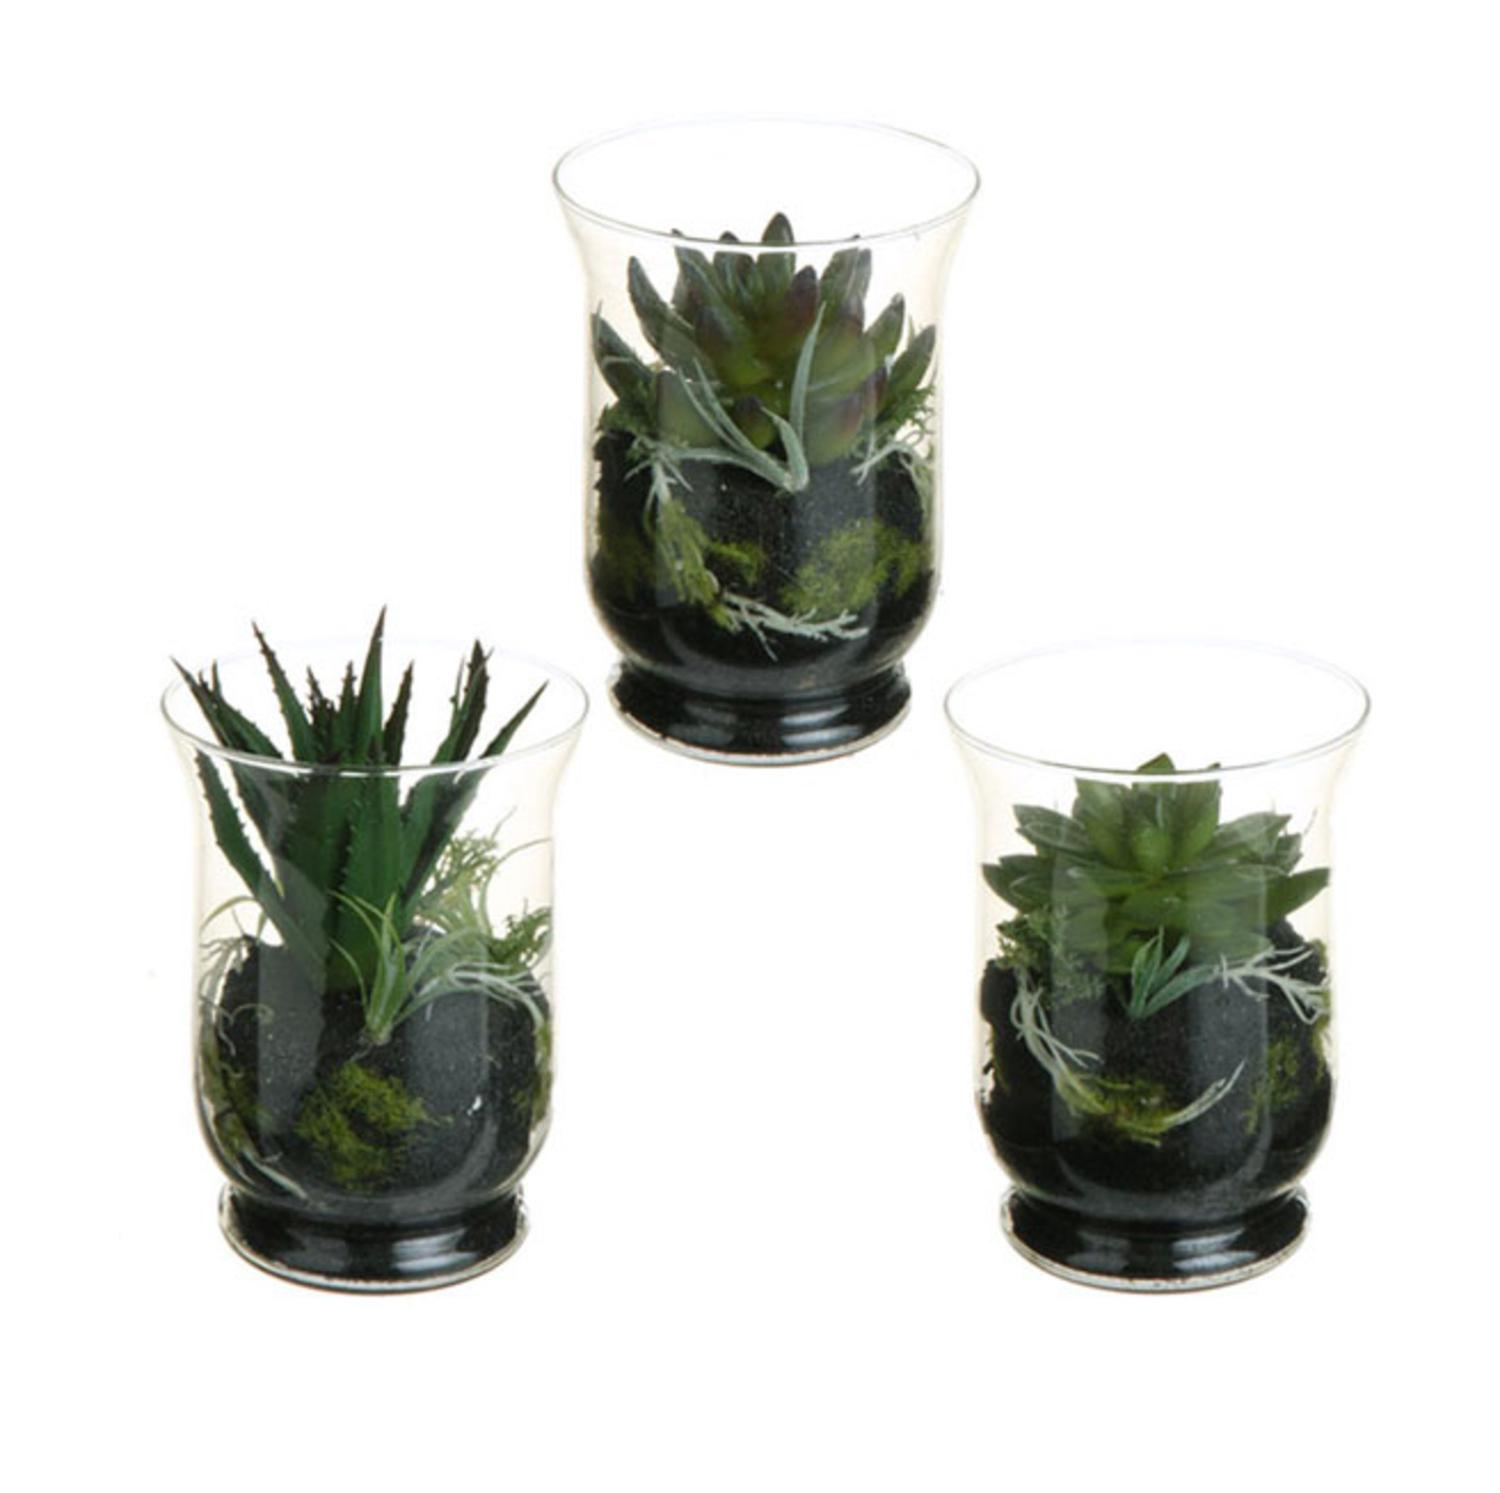 Set of 3 Southwestern Mixed Artificial Cactus and Succulent Plant Terrariums 6""